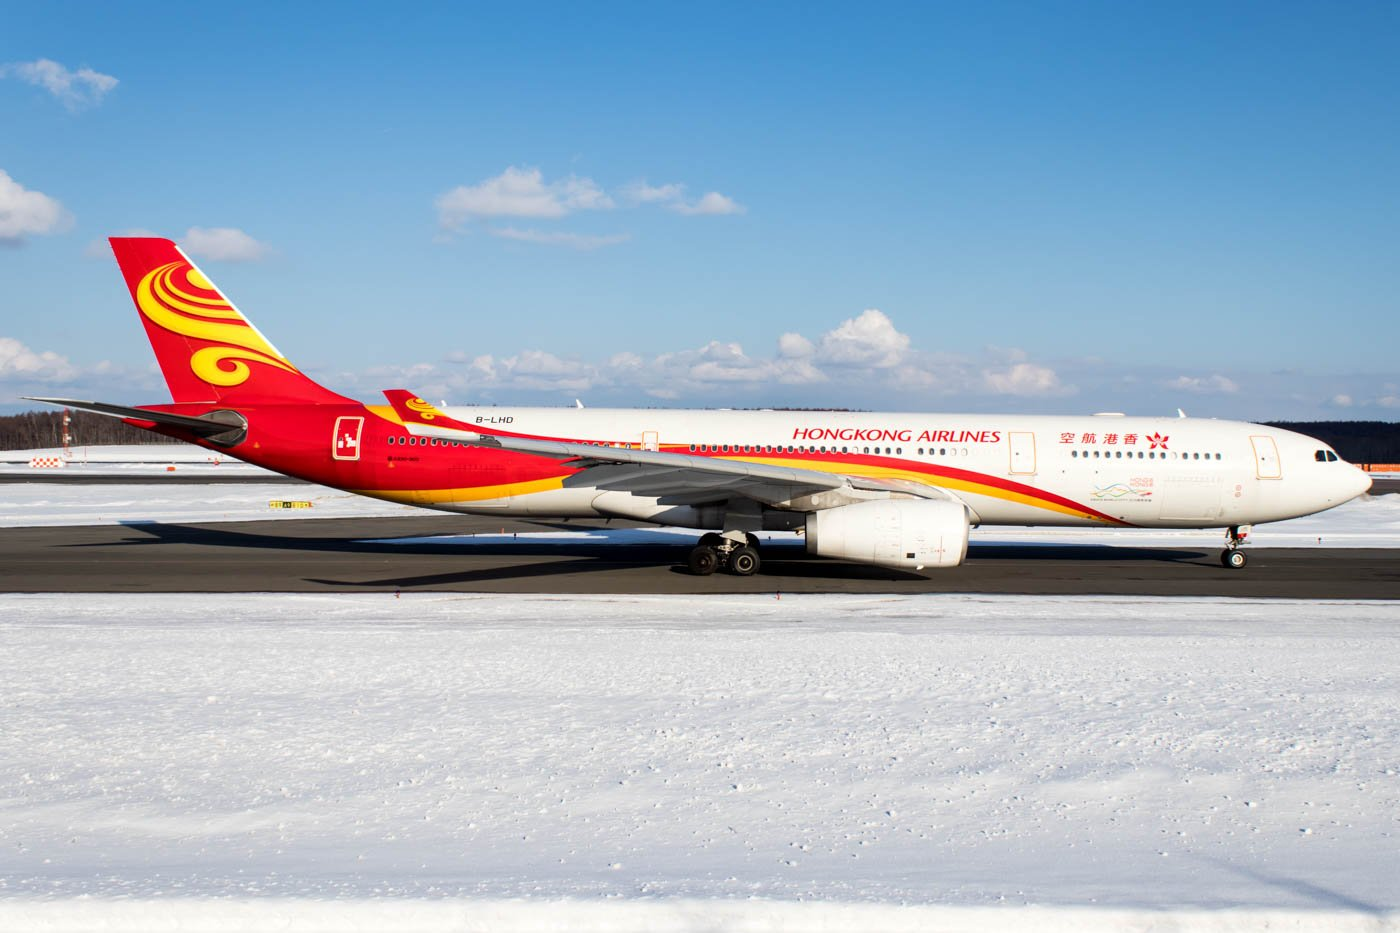 Hong Kong Airlines A330 at Snowy RJCC